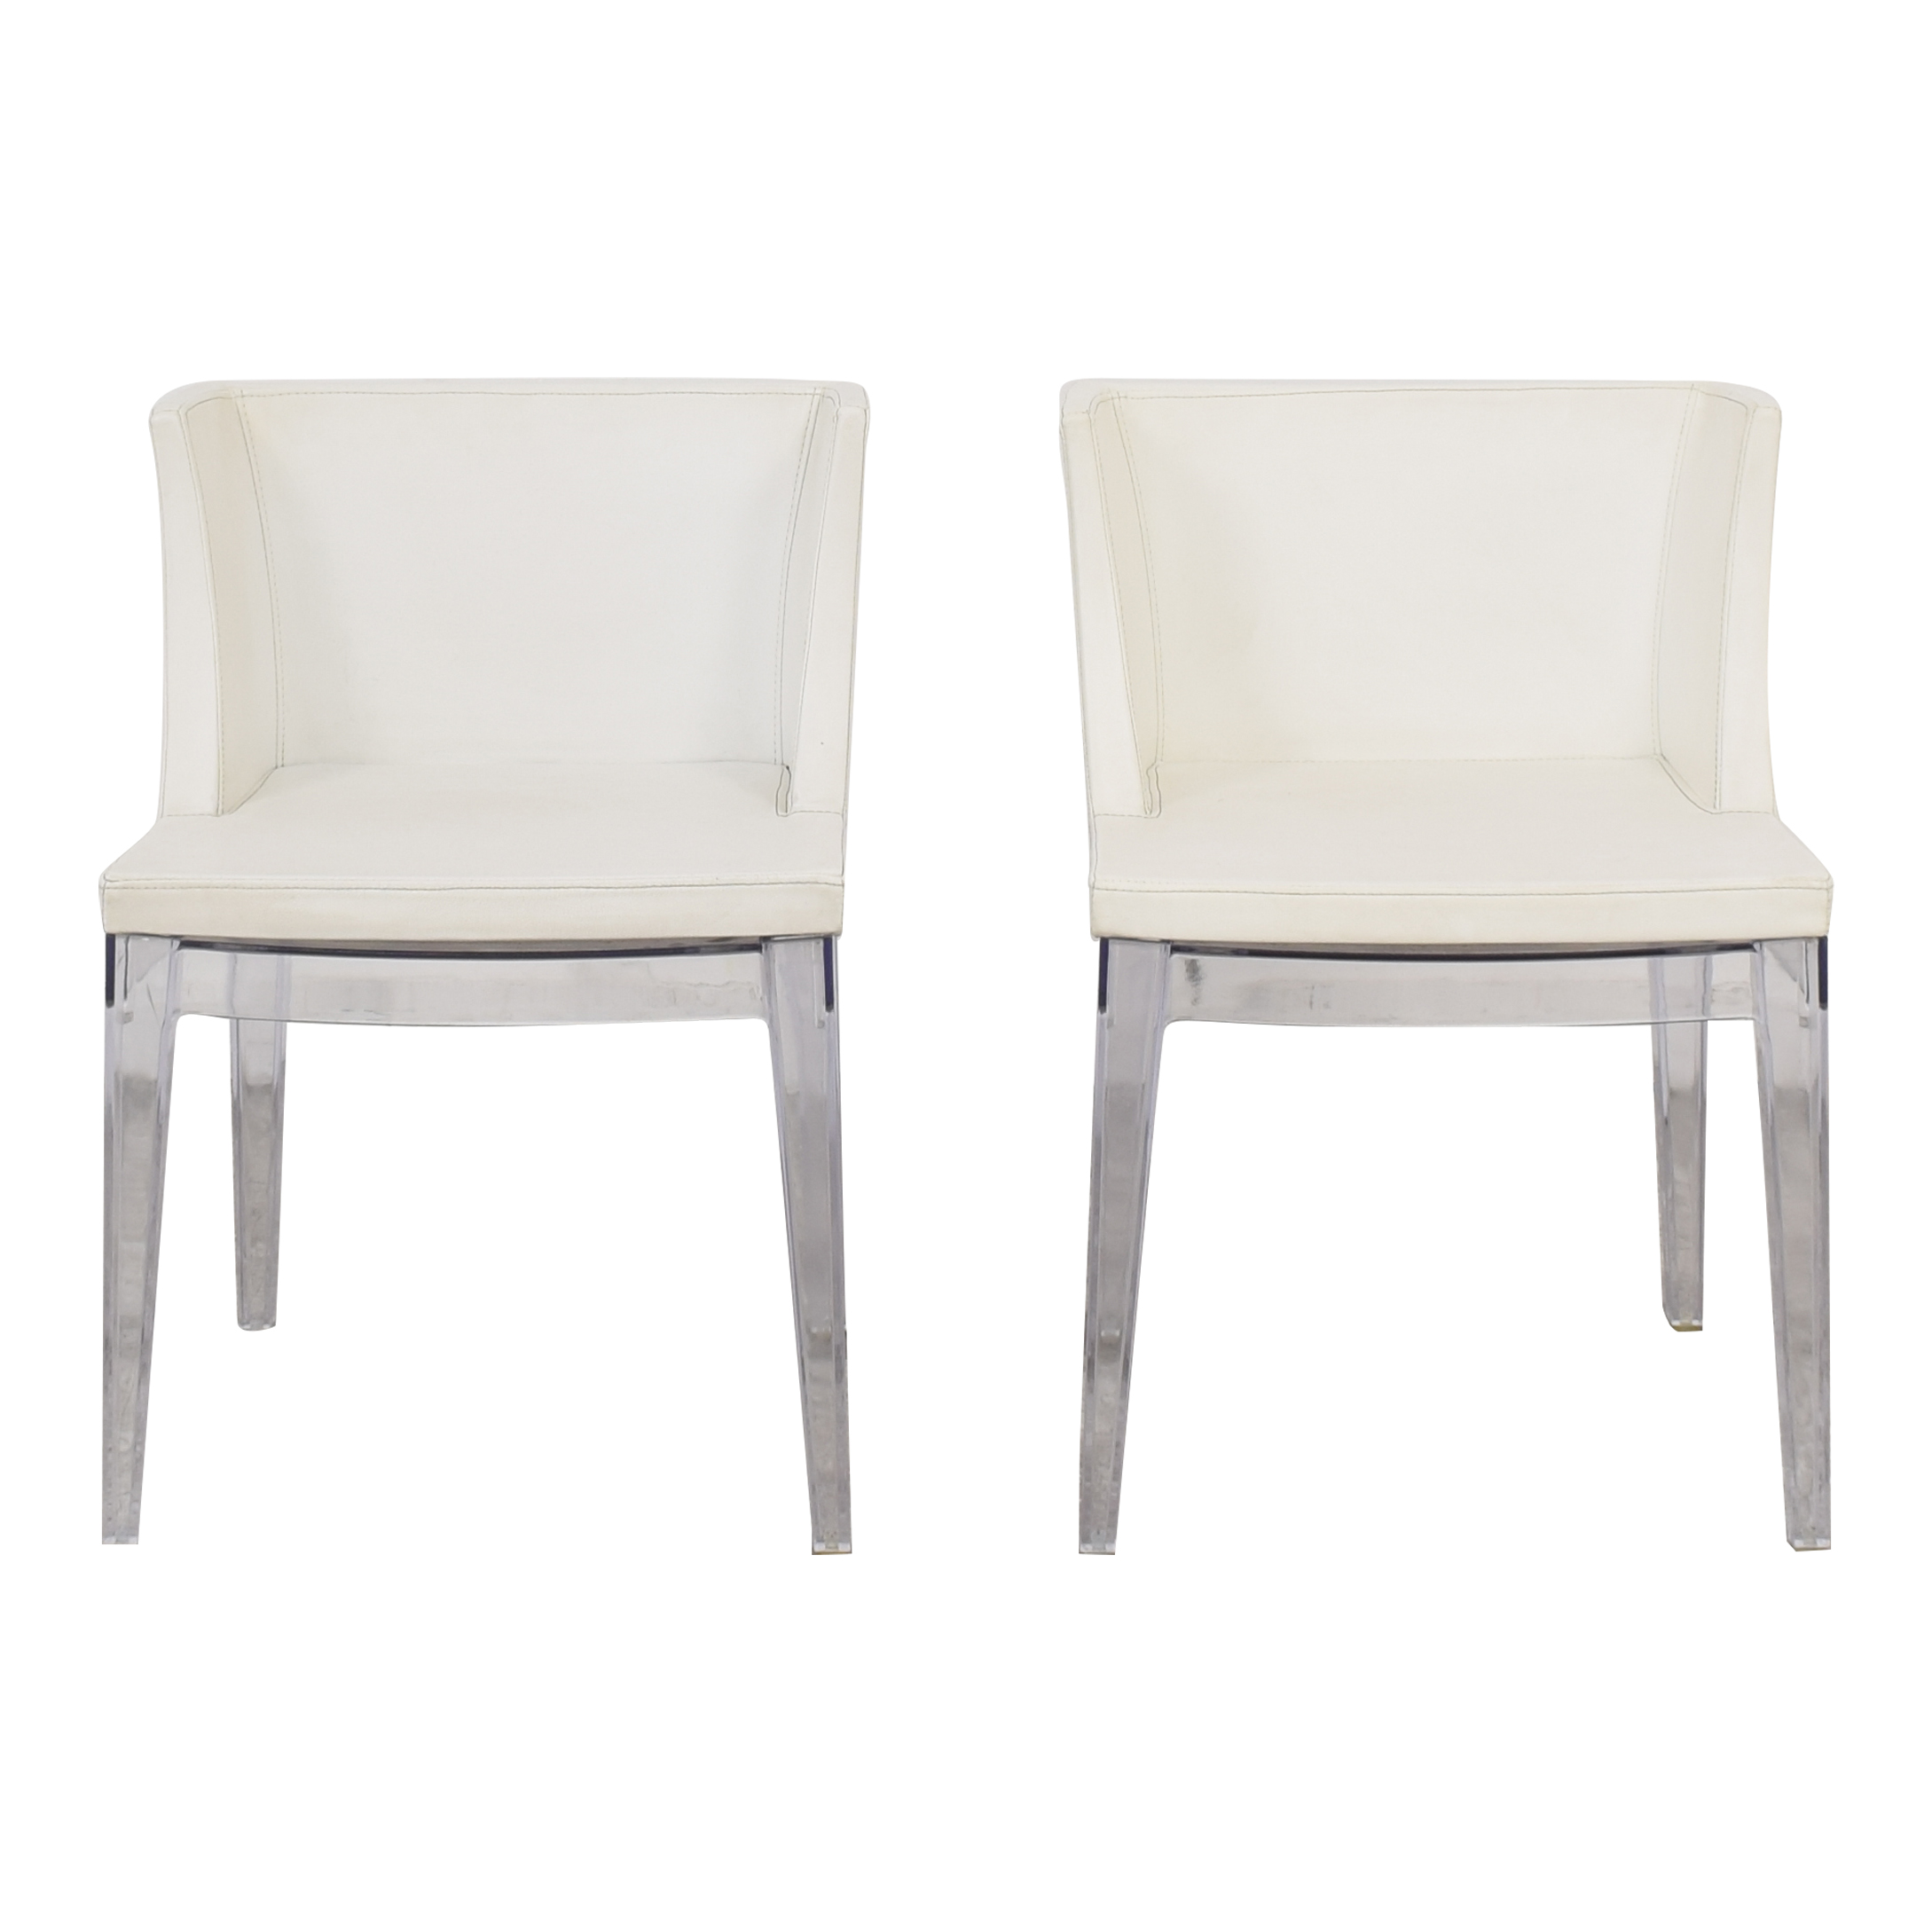 shop Mademoiselle-Style Chairs  Accent Chairs